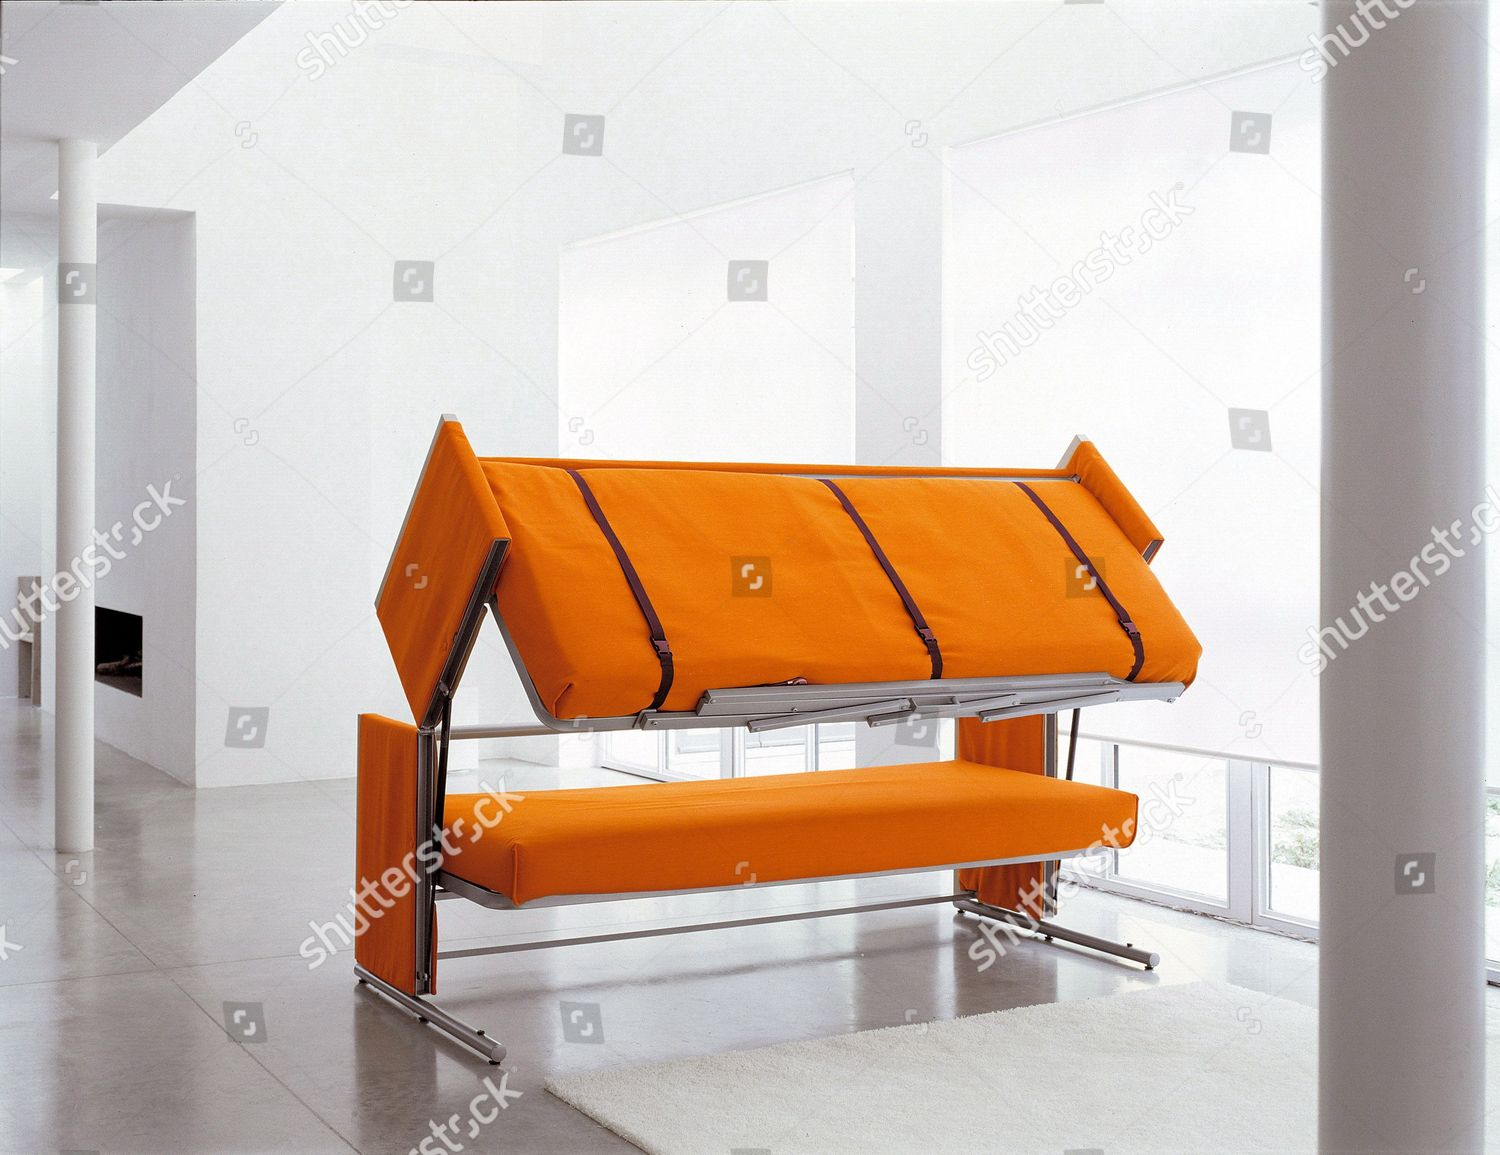 sofa bed being transformed into bunk bed editorial stock photo rh shutterstock com sofa transforms into bunk bed sofa into bunk bed uk